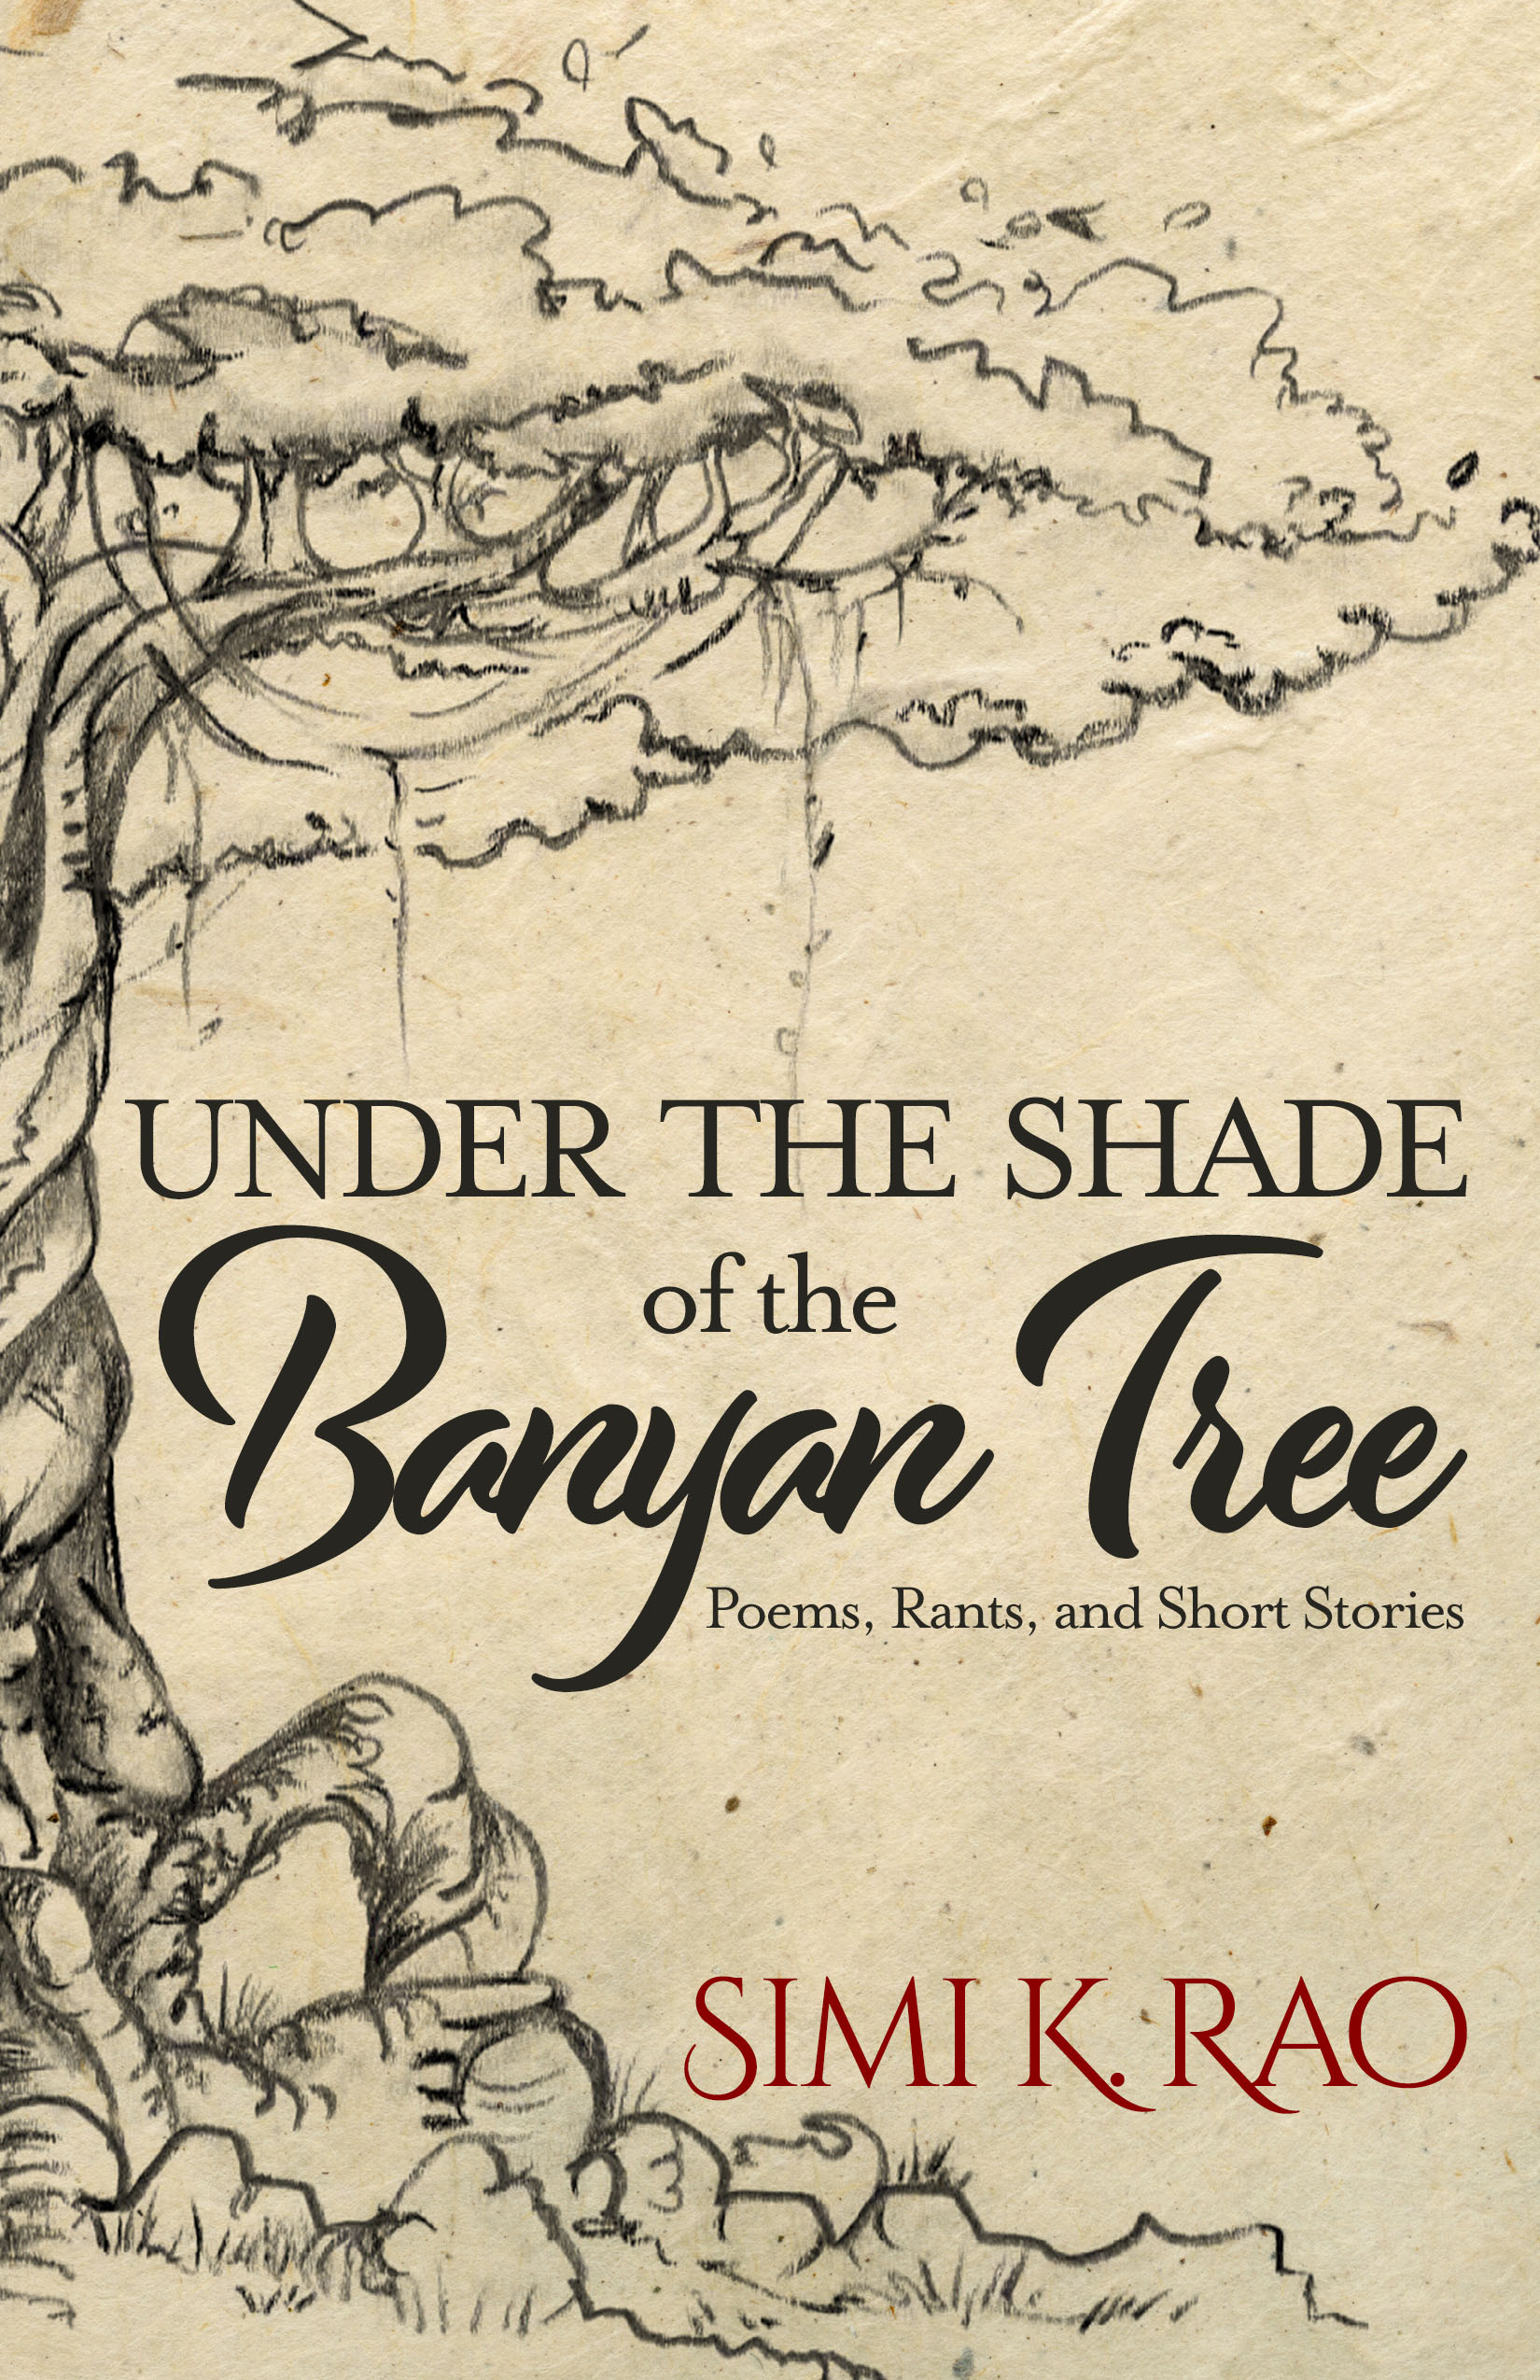 Under the Shade of the Banyan Tree book cover